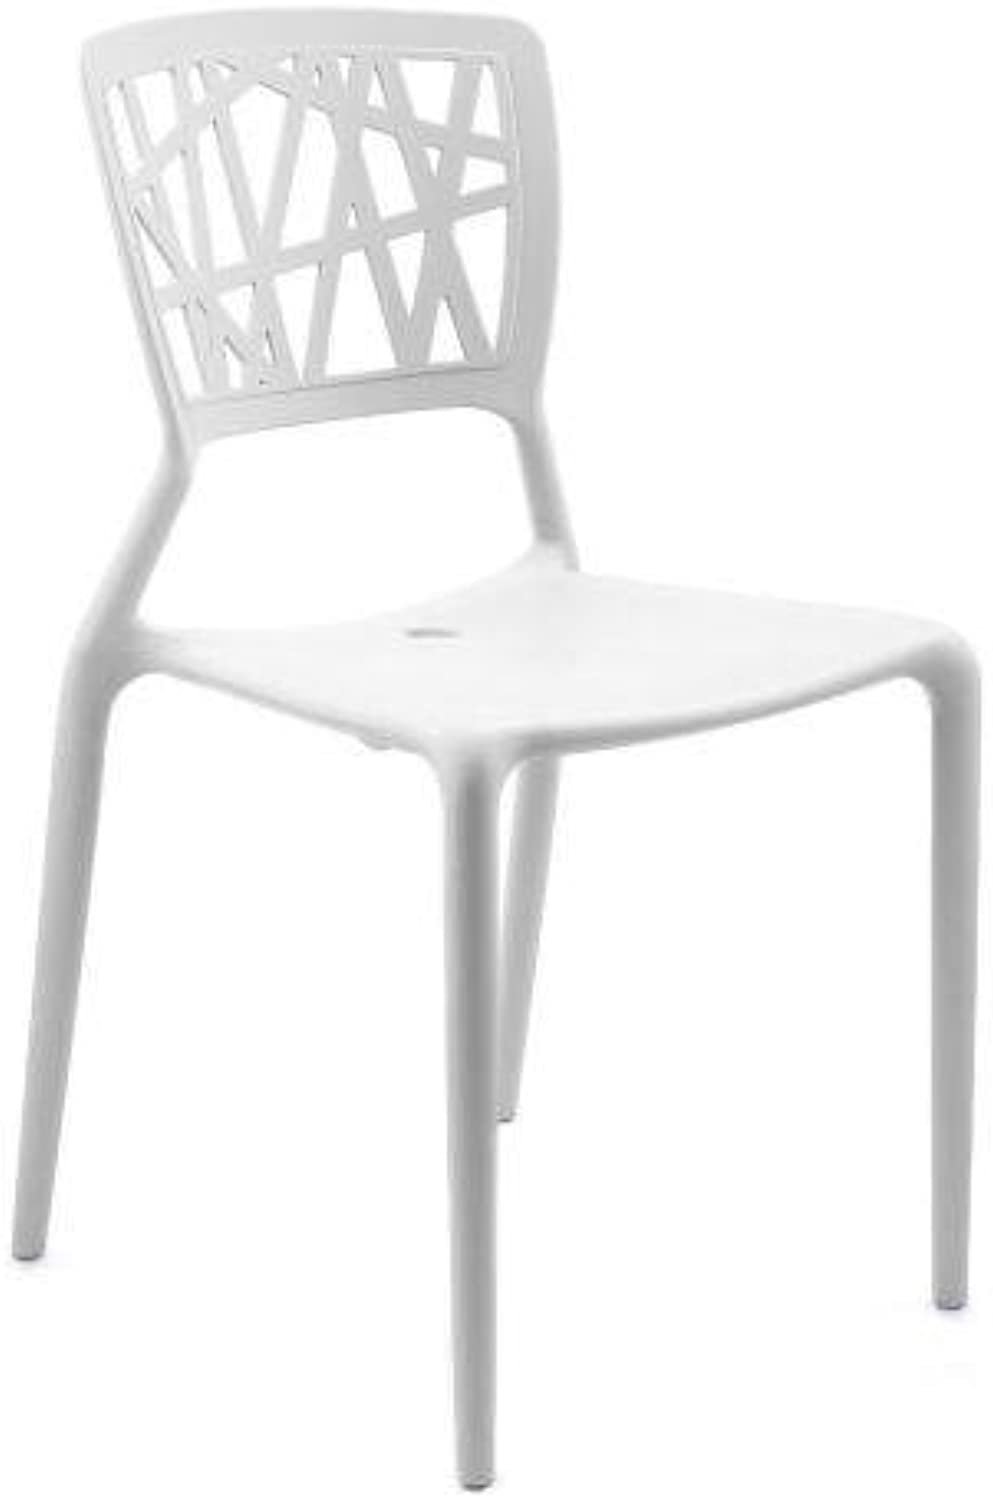 Set of 4 - Dondoli E Pocci Viento Replica Dining Chair - White